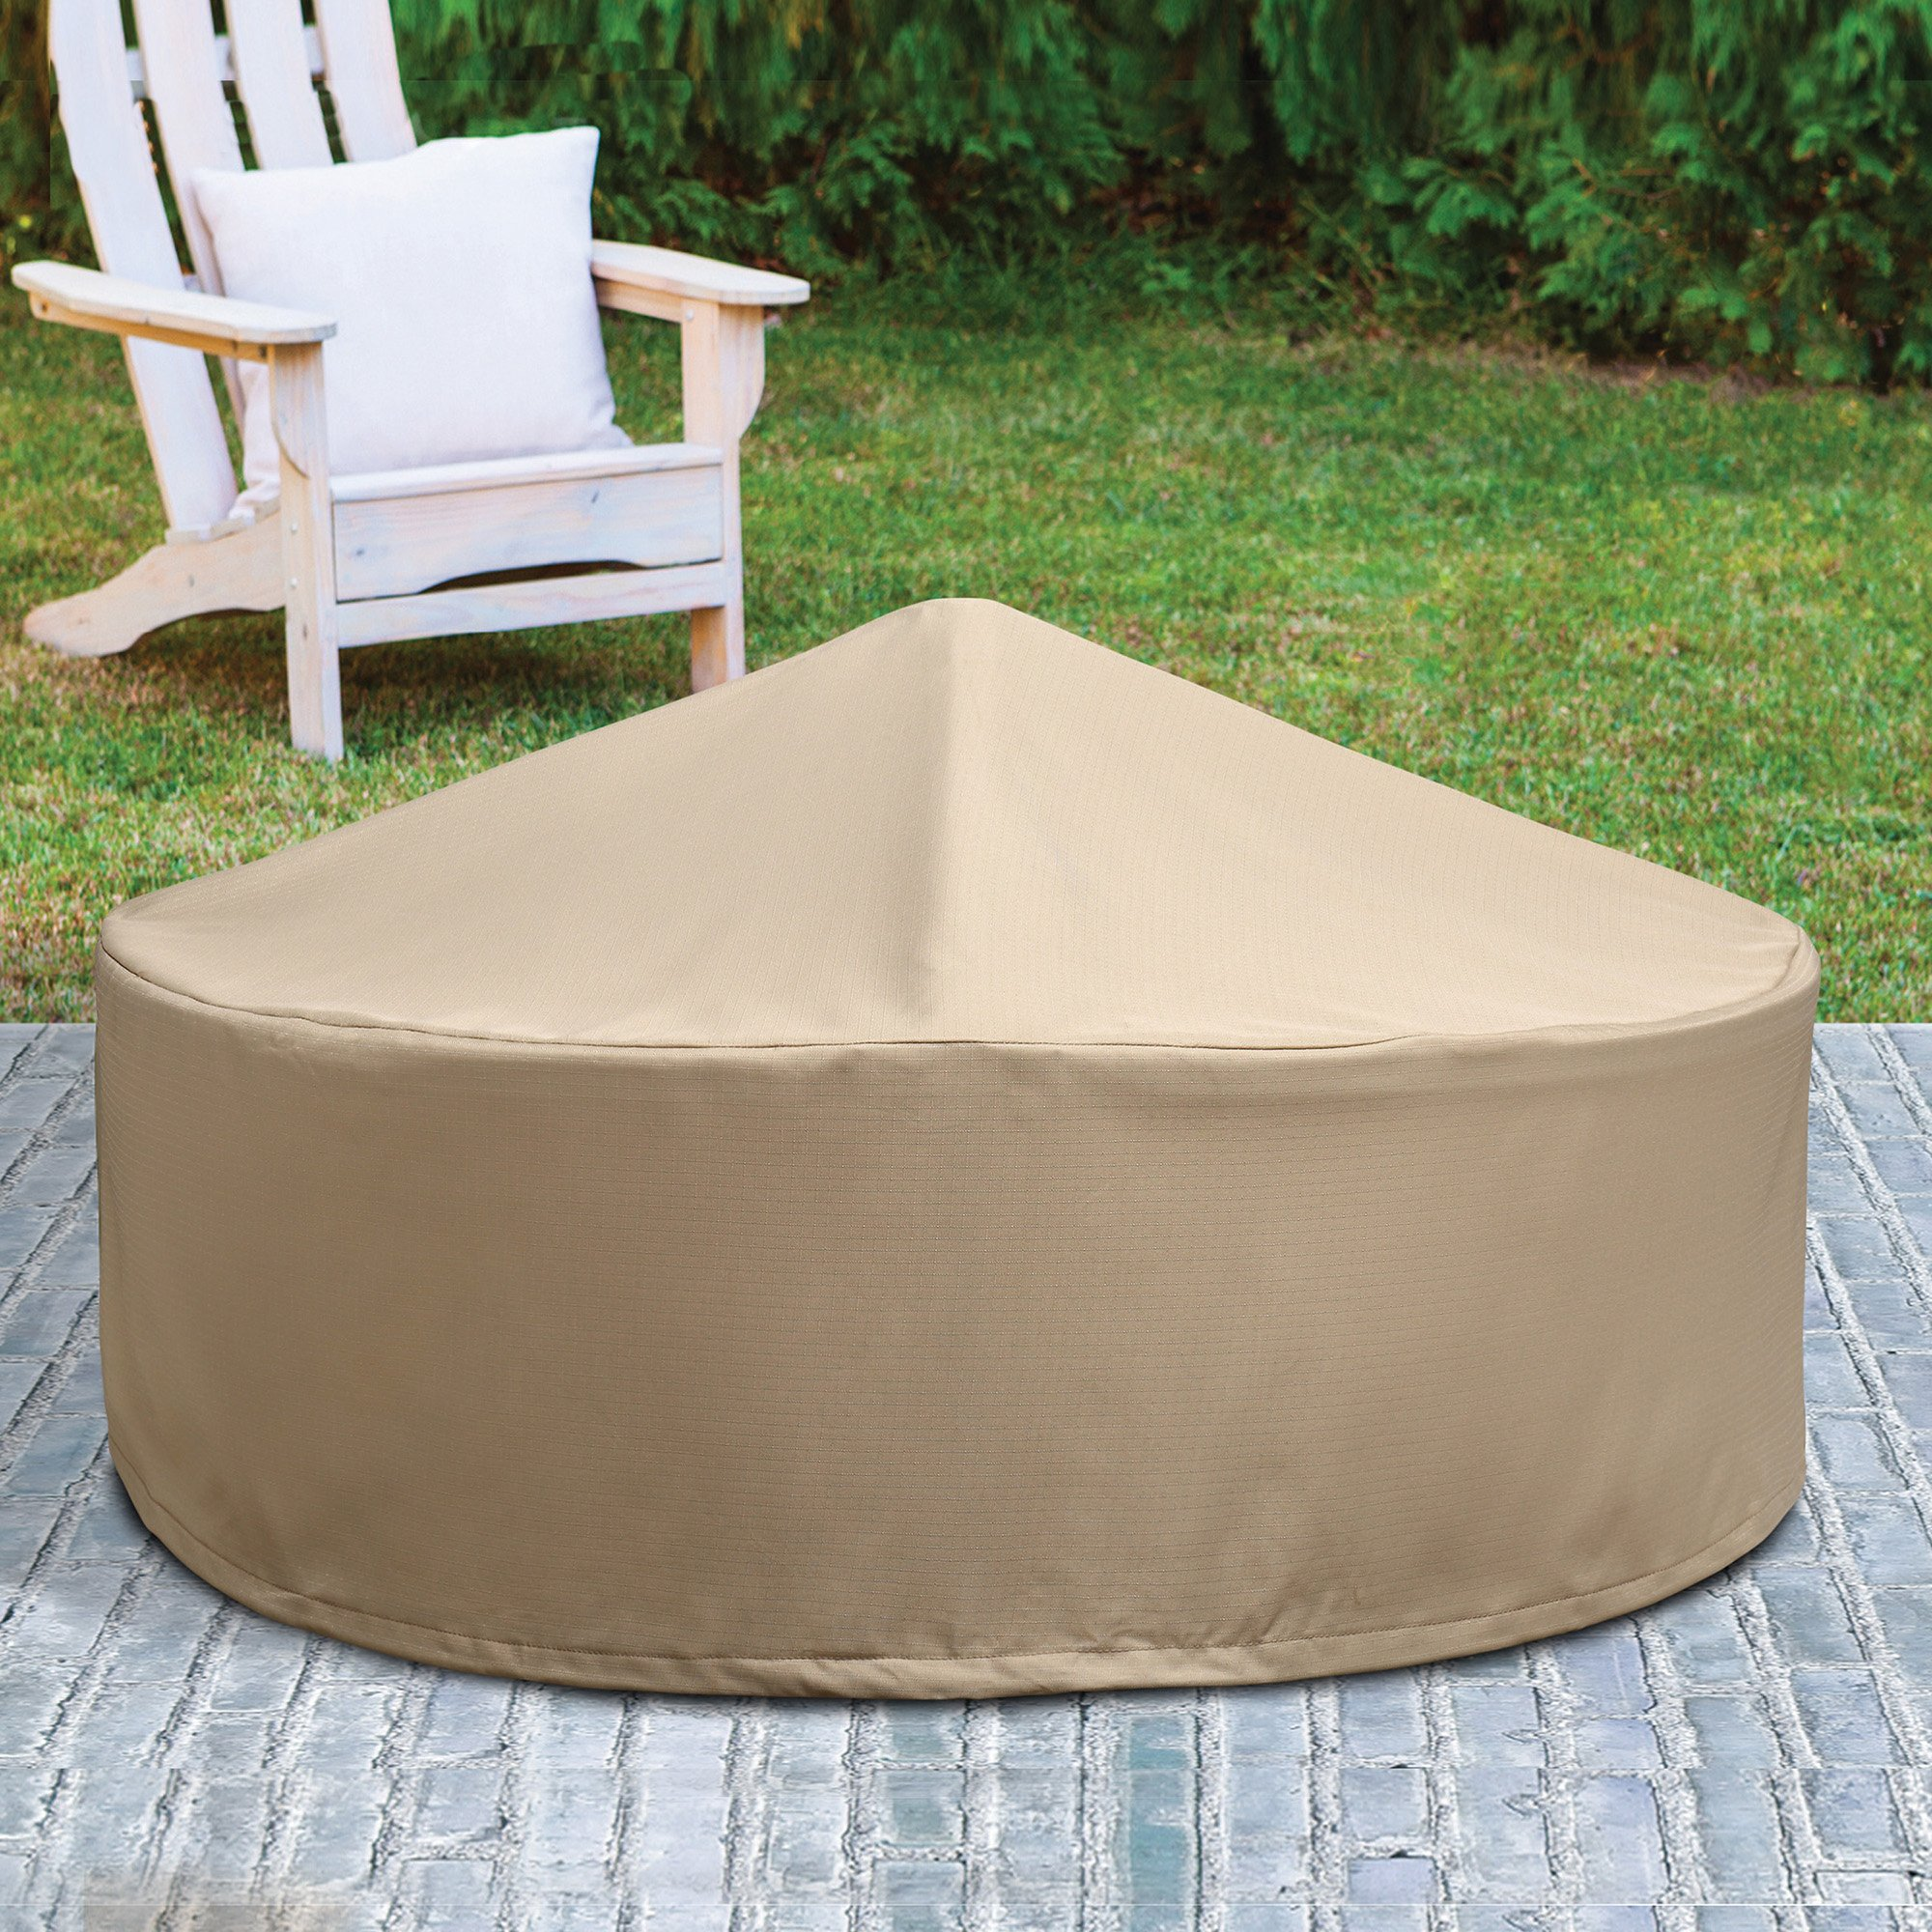 Patio Armor SF46618 260 Gsm Ripstop Pvc F Pit Firepit Cover, 40'' Round, Taupe